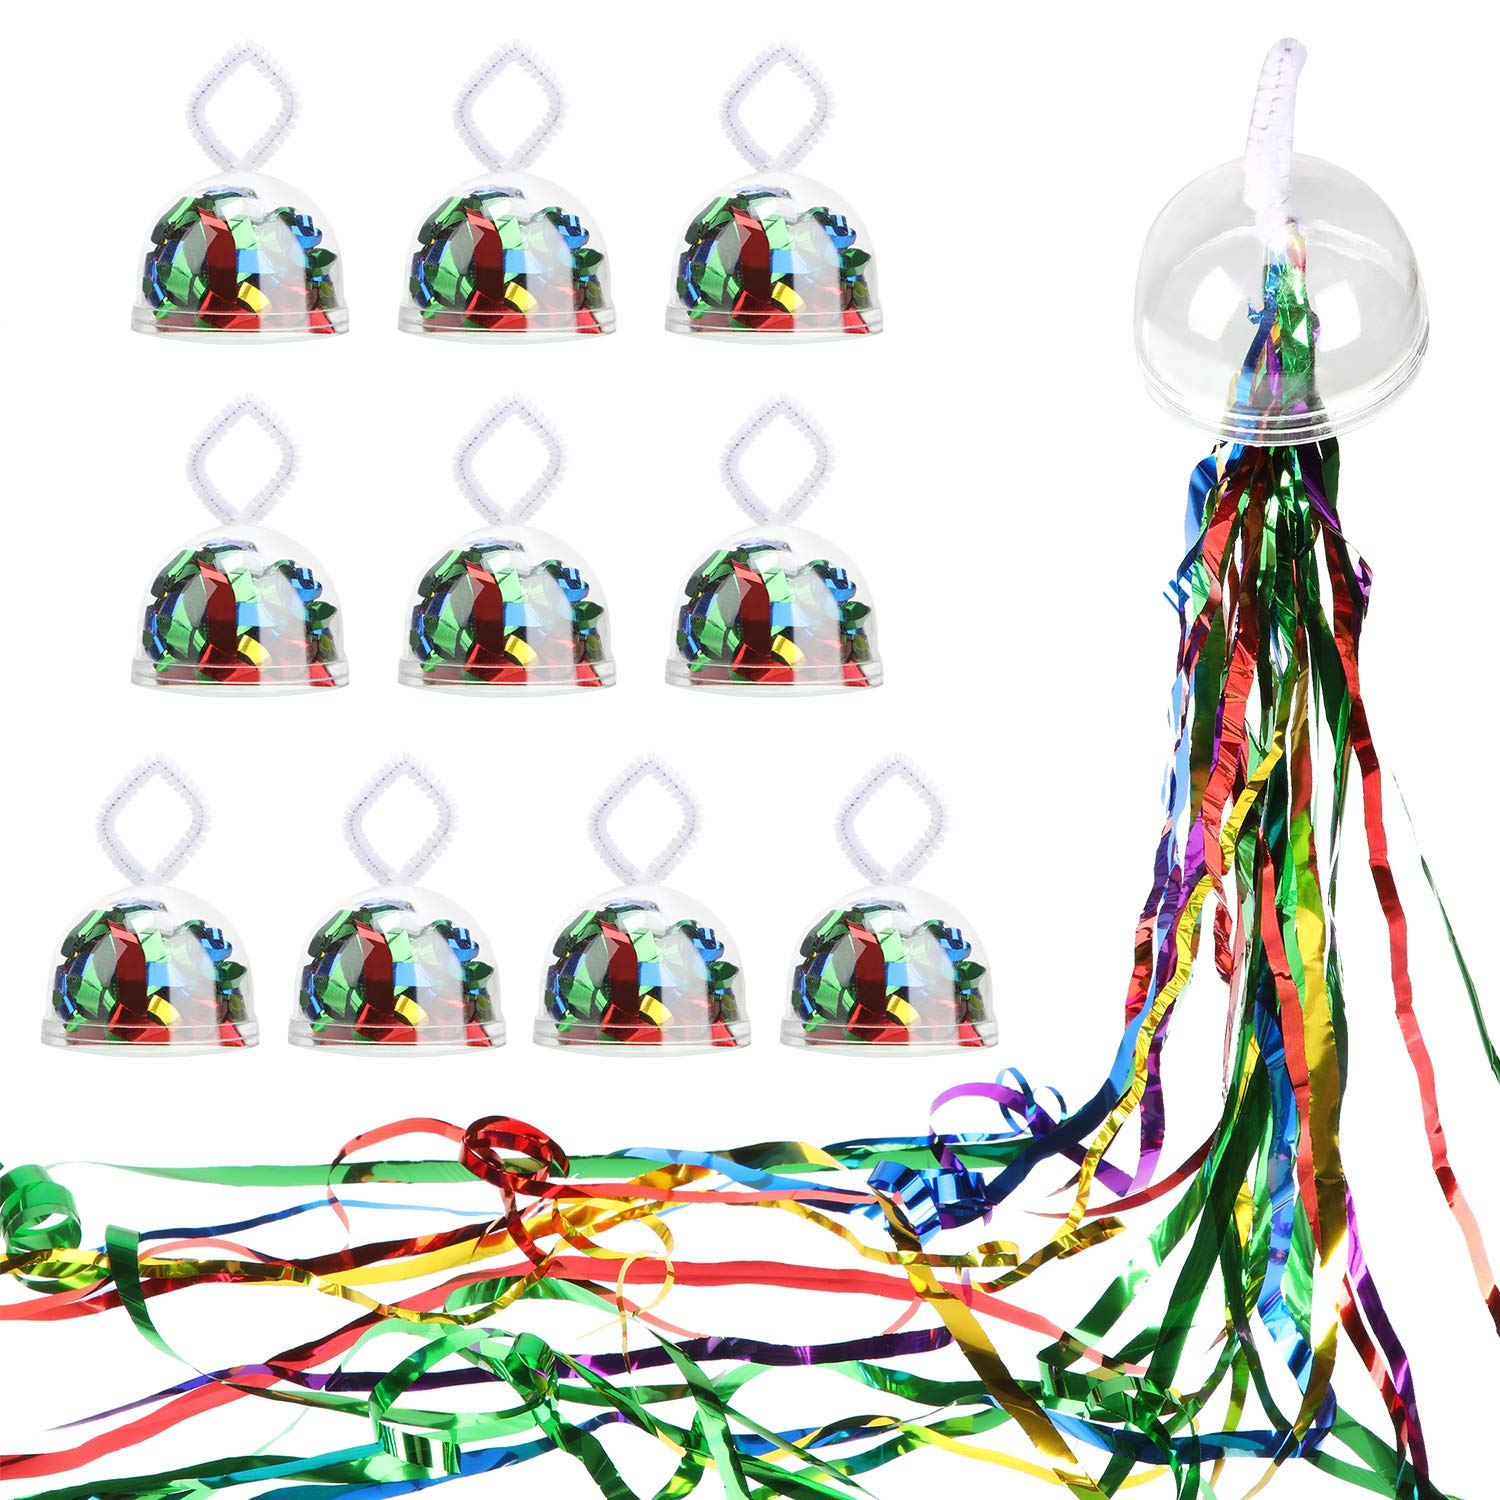 10 Pieces Throw Streamers Party Streamers for Birthday Wedding Graduation Party Favors Shows (Metallic Multicolor) by meekoo